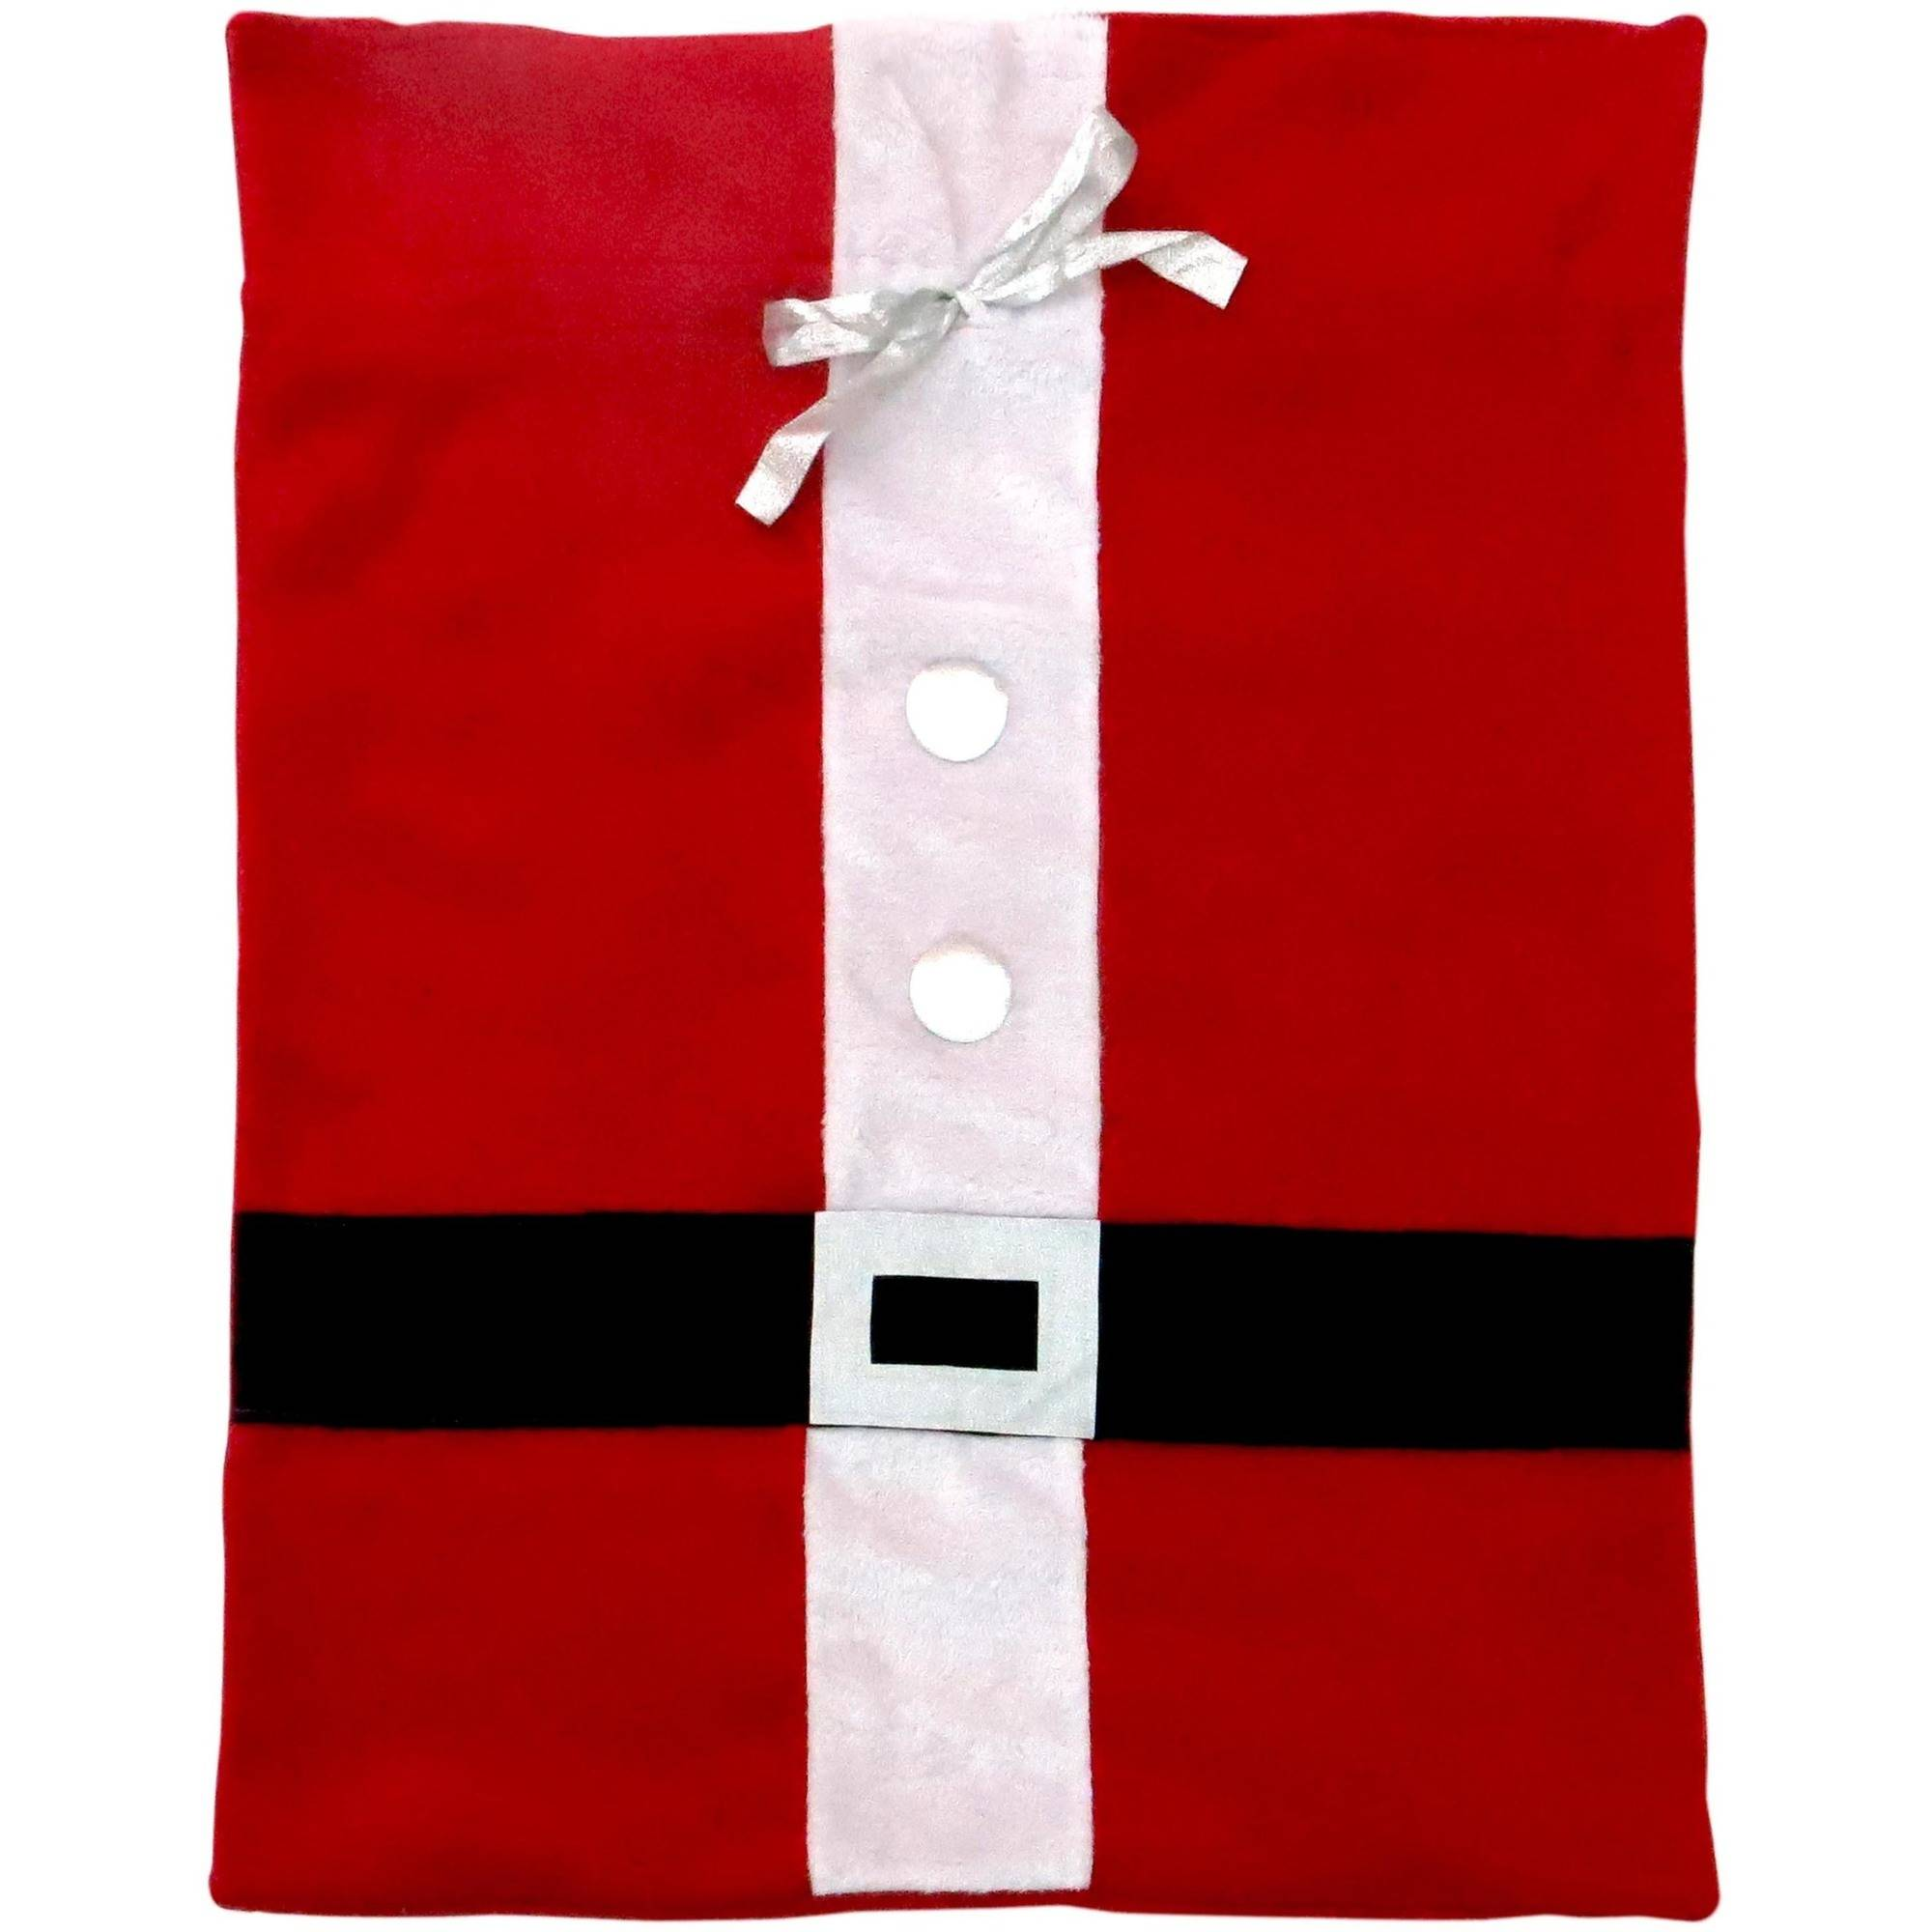 "Holiday Time 36"" by 28"" Christmas Festive Fabric Gift Bag - Santa Claus"